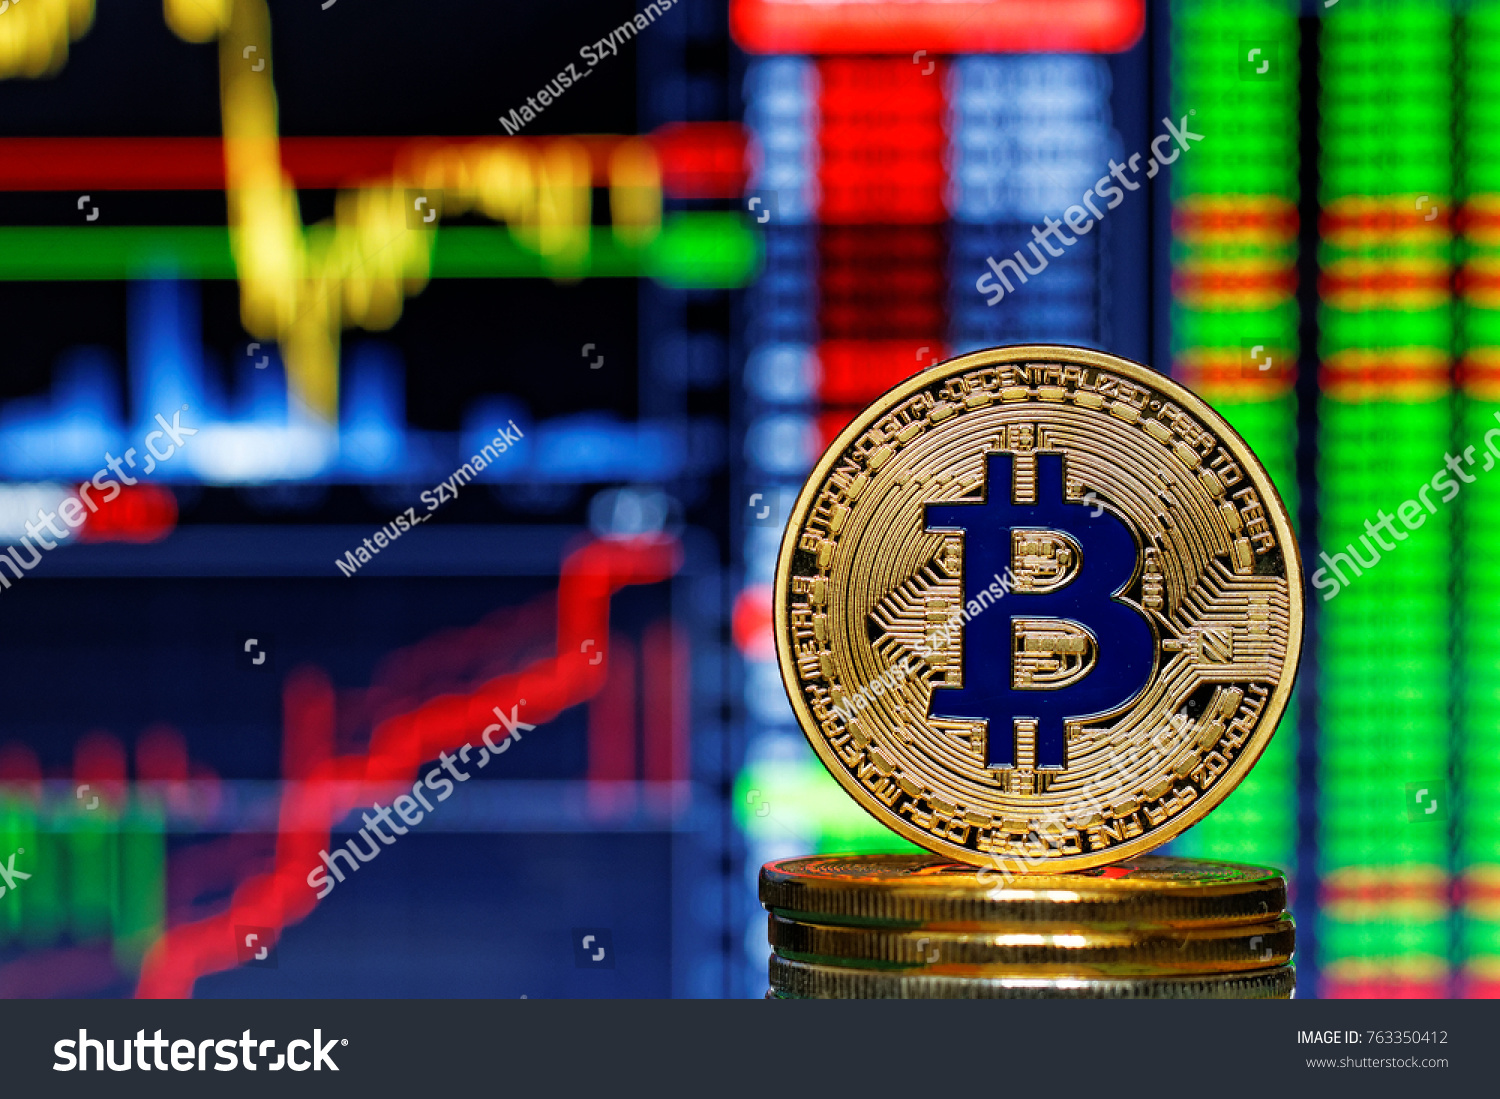 Gold bitcoin popular cryptocurrency on stack stock photo 763350412 gold bitcoin popular cryptocurrency on stack of bitcoins on stock market chart background biocorpaavc Images